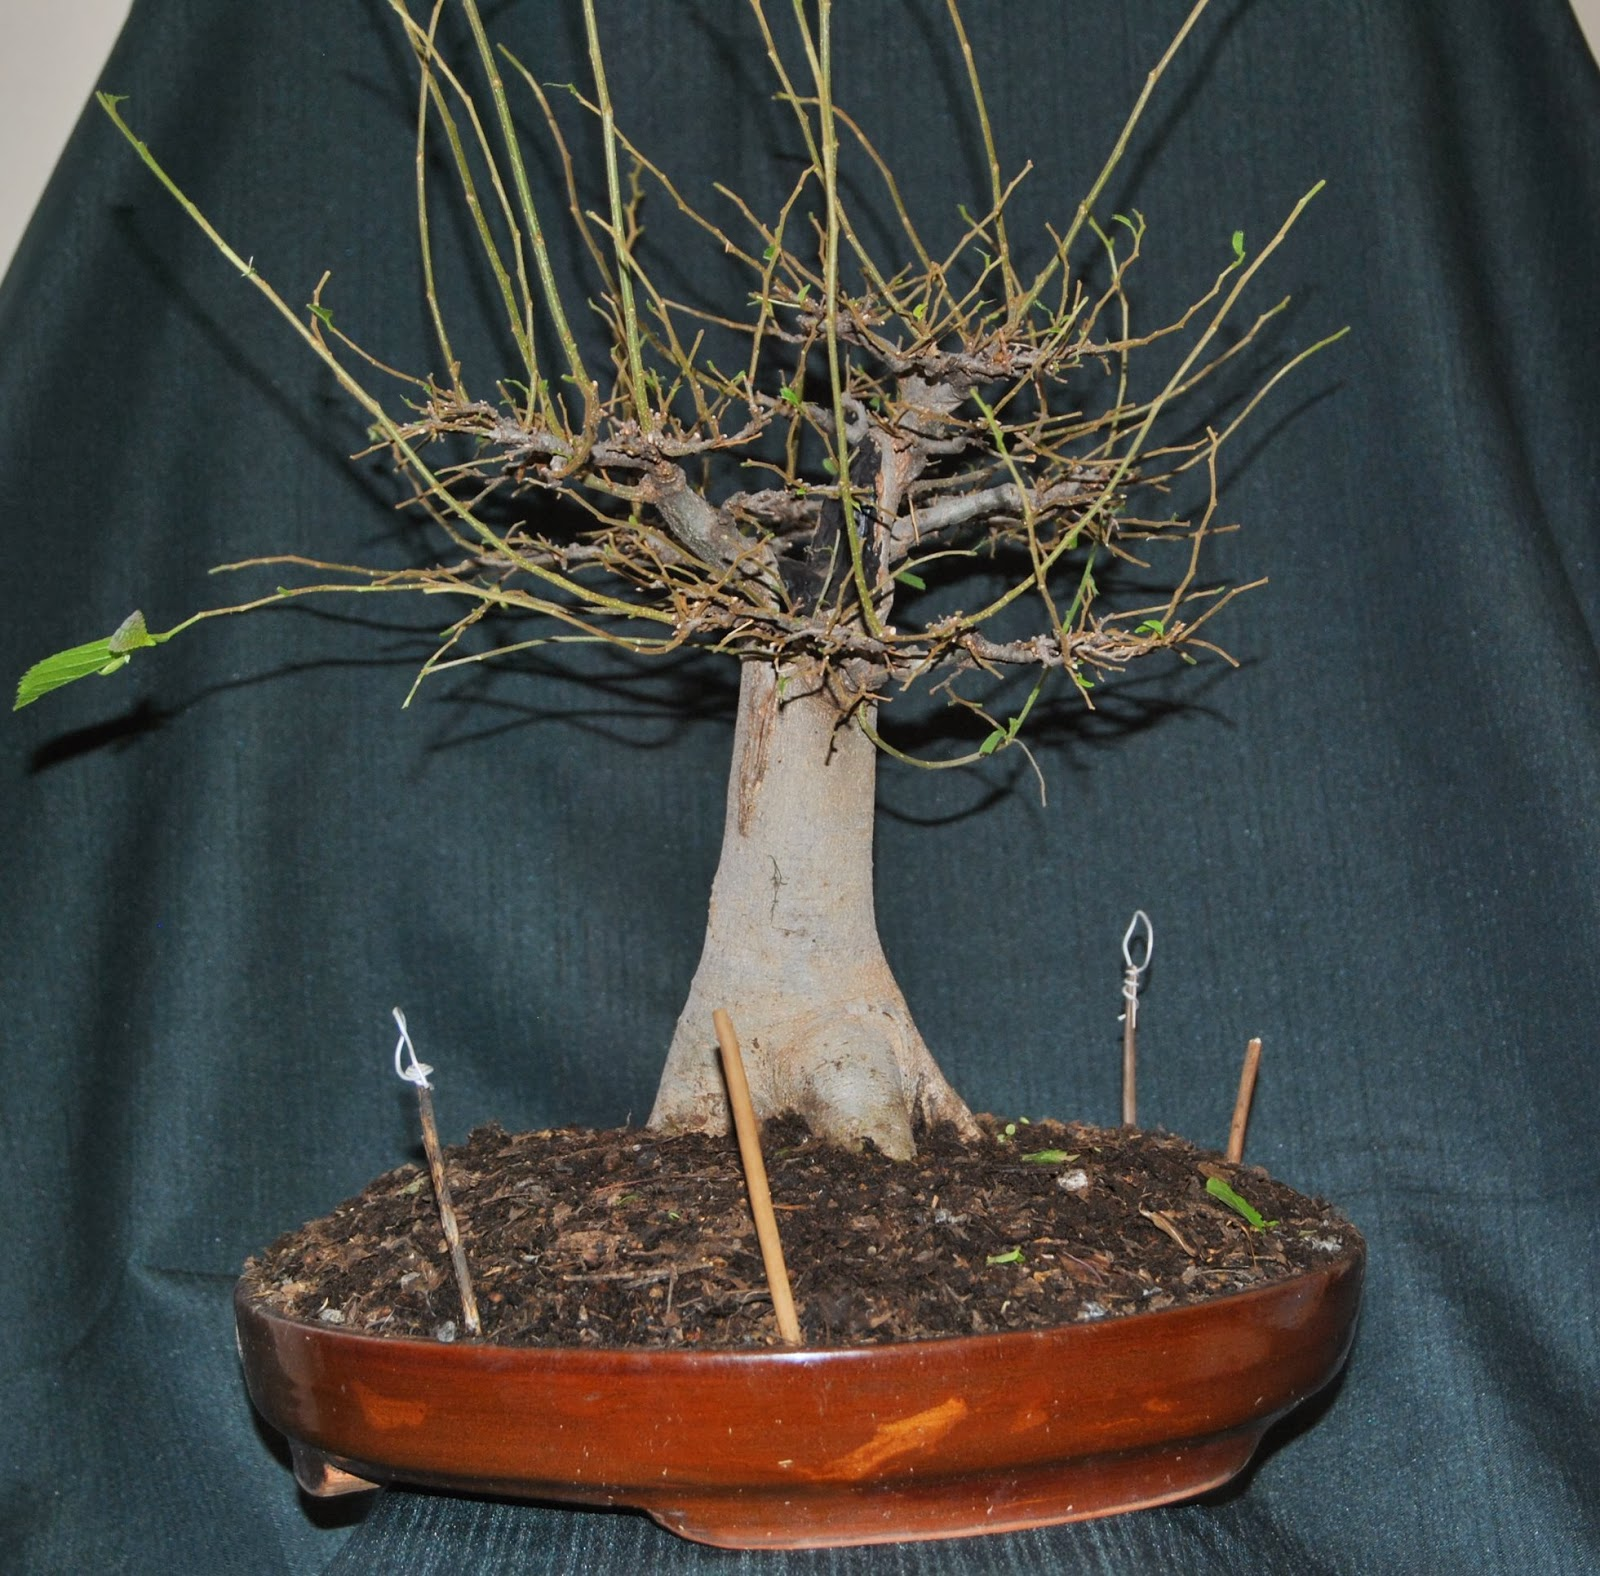 Celtis In A Baobab Style LENNARD39S BONSAI BEGINNINGS